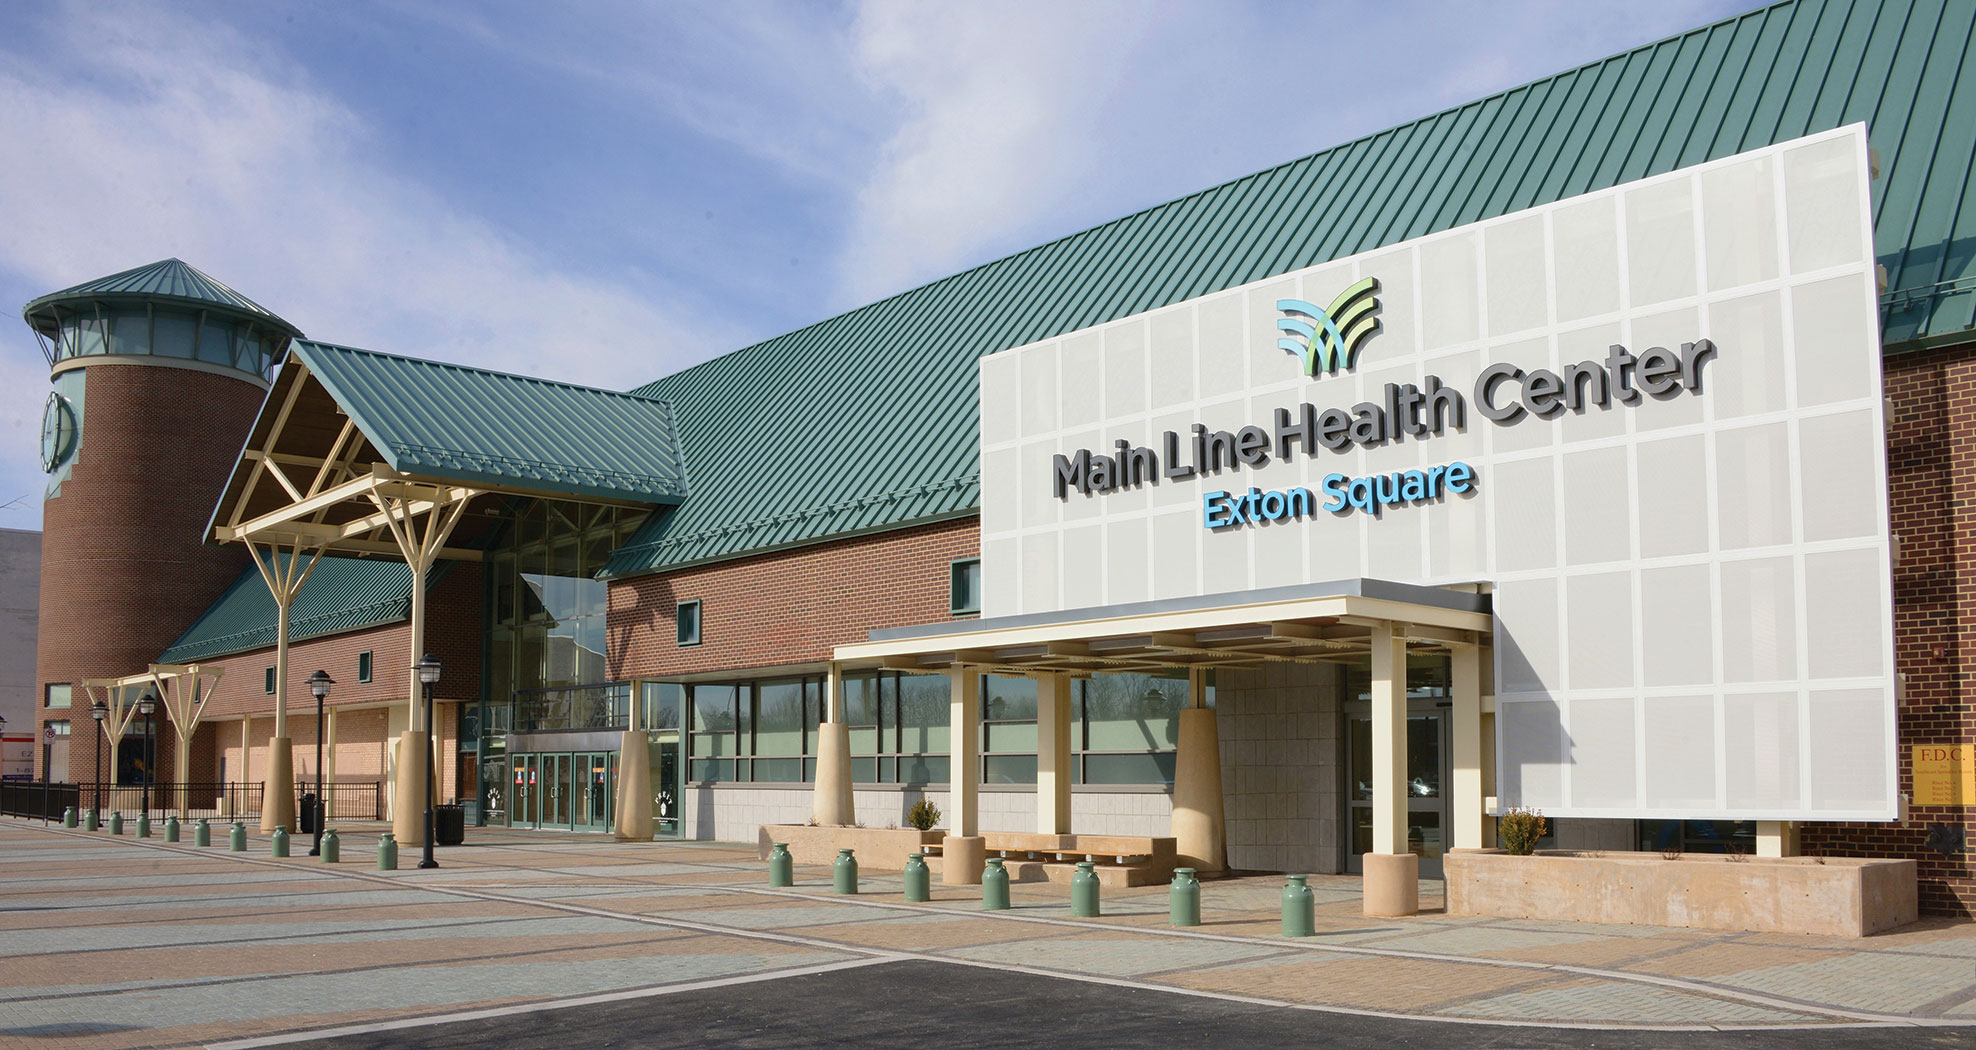 Repurposing retail space for health care use | 2017-12-07